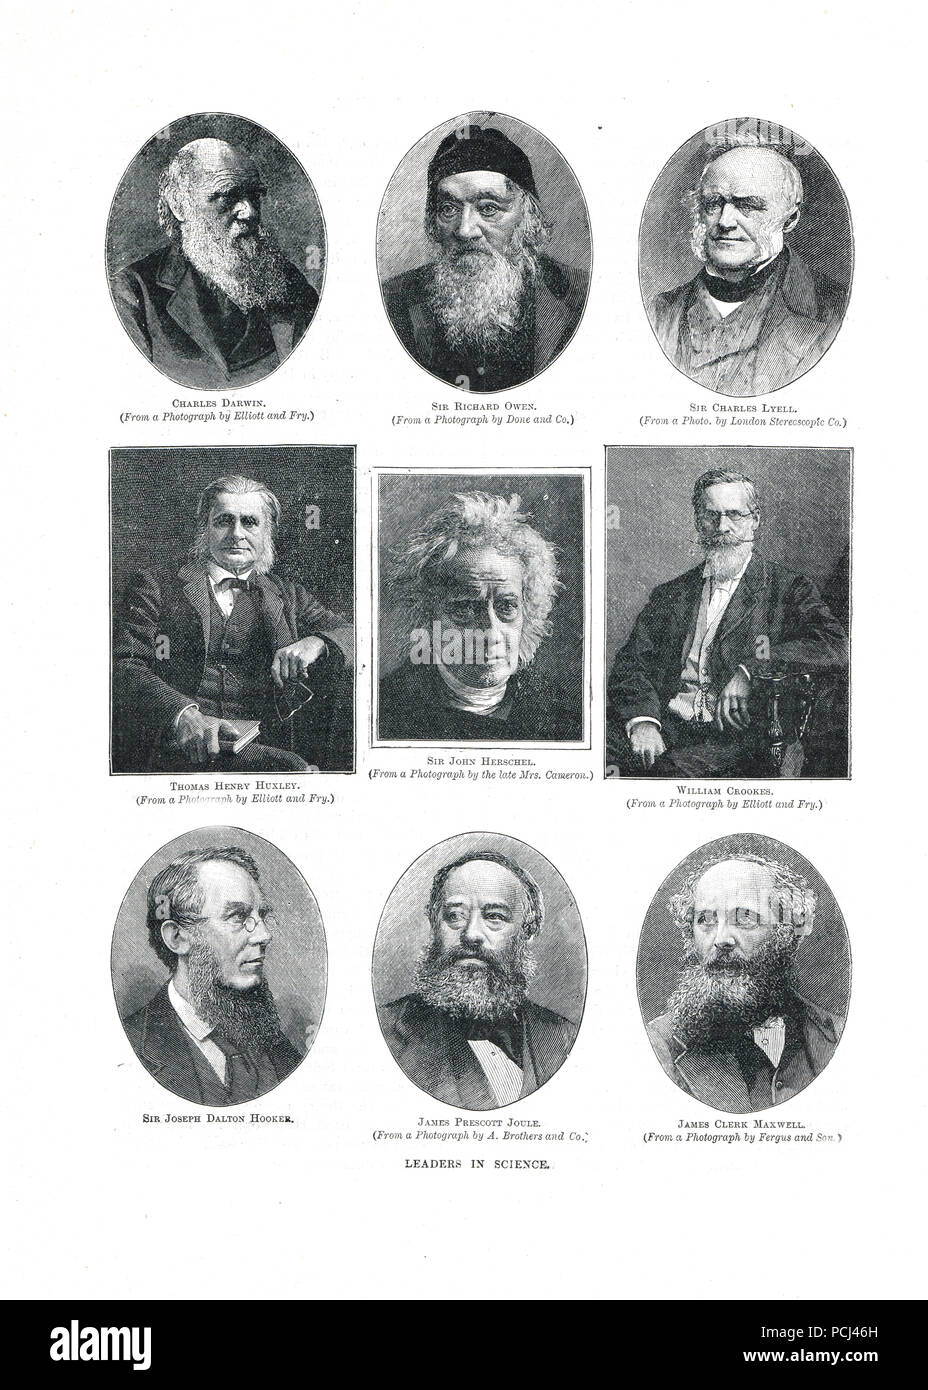 Leaders in science of the 19th Century - Stock Image